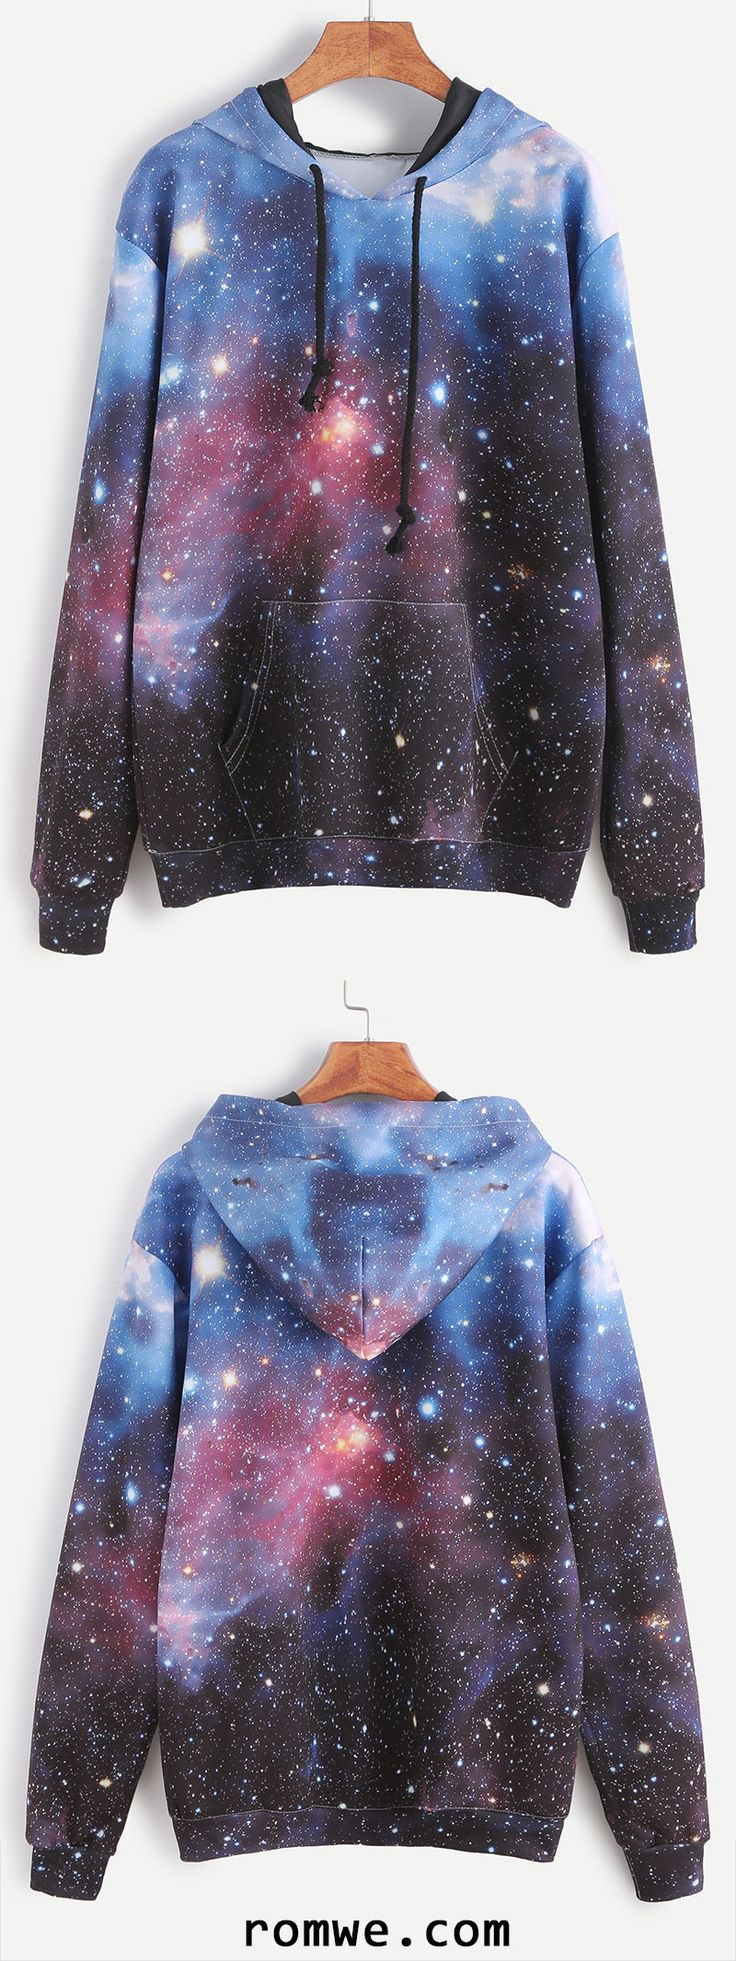 Galaxy Print Drawstring Hooded Pocket Sweatshirt